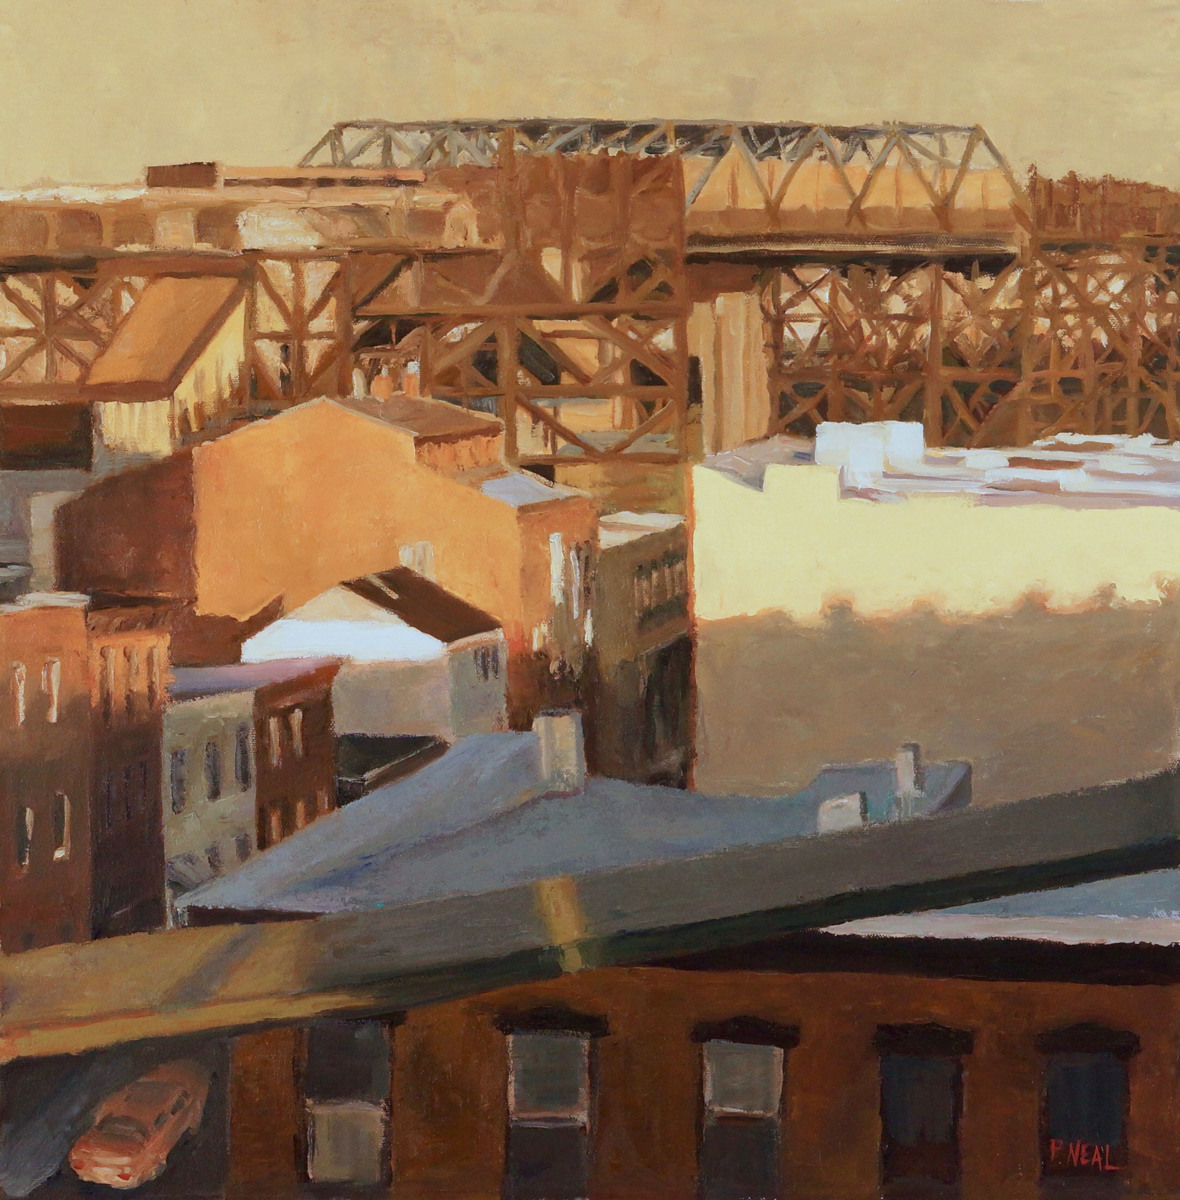 Trestle over Gowanus (large view)